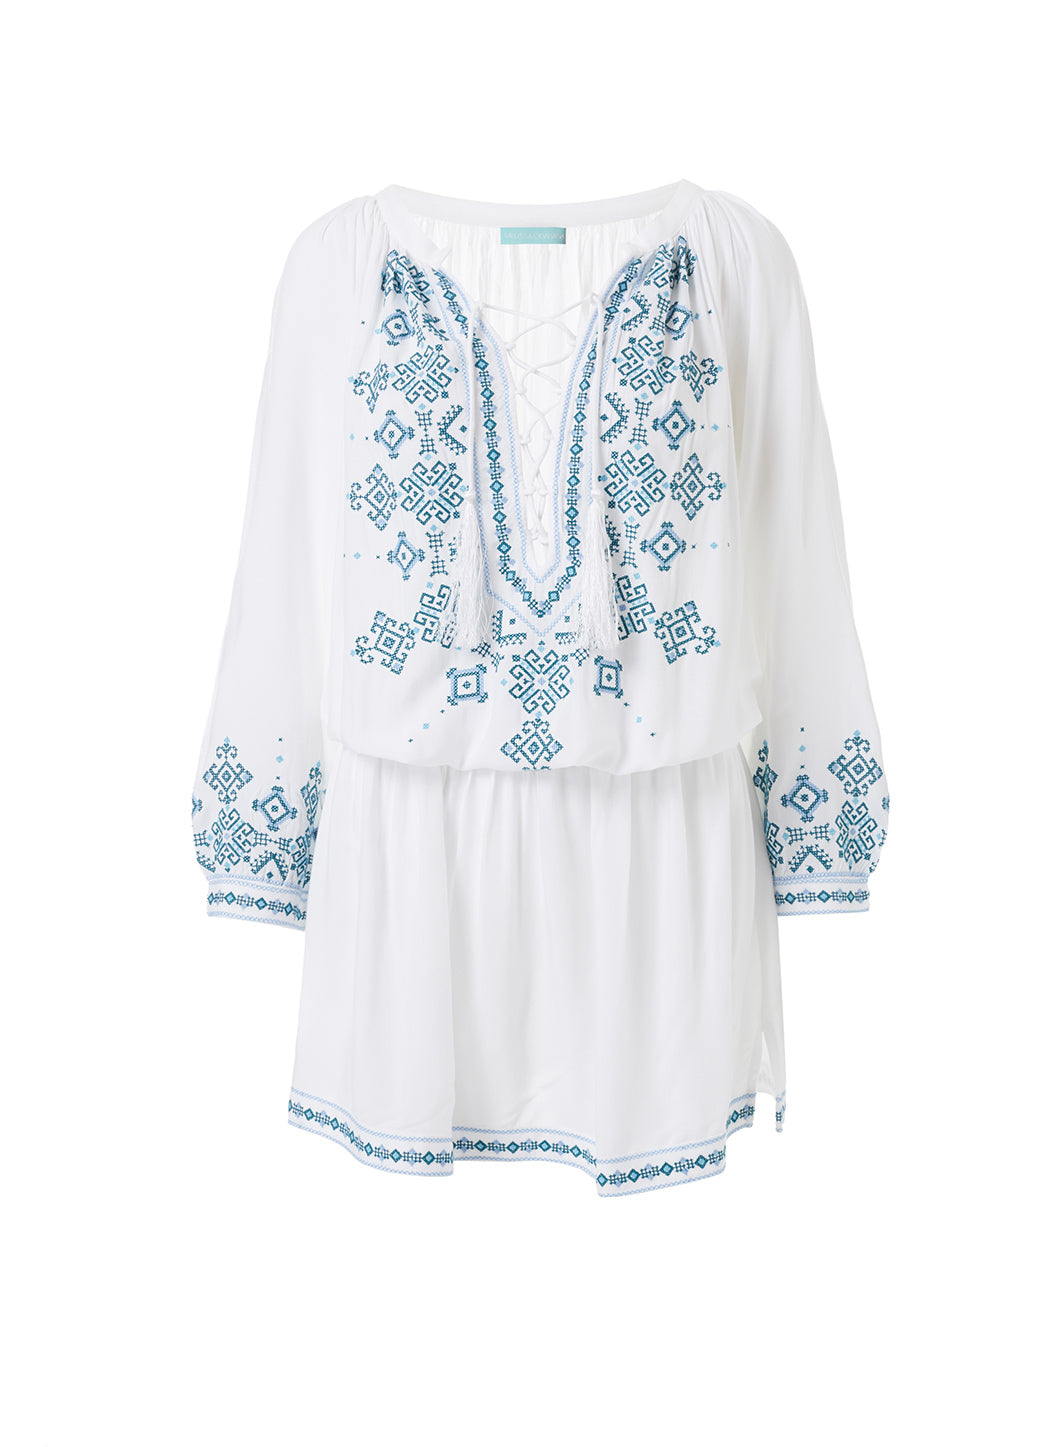 Nadja Whitemint Embroidered 3/4 Sleeve Short Dress - Melissa Odabash Beachwear